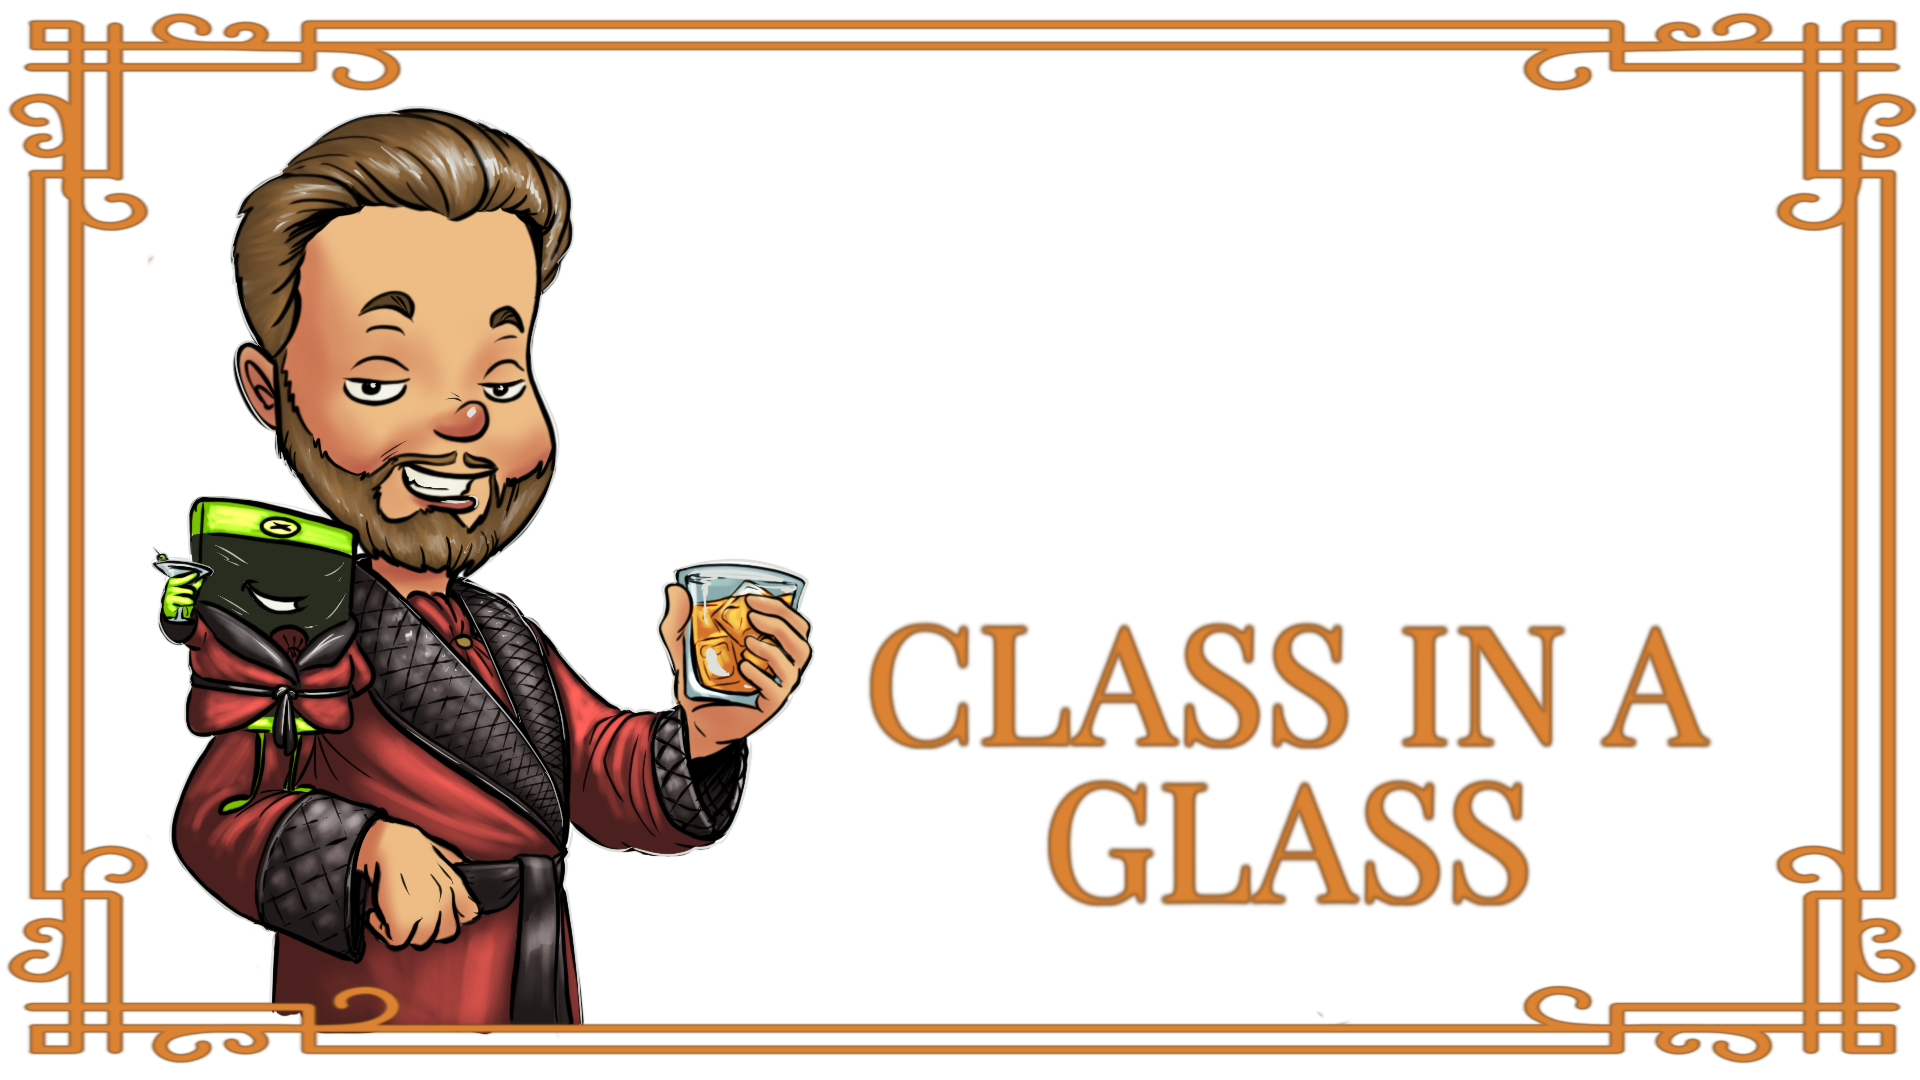 Class in a glASS - A game with class that you can enjoy with your favorite beverage, this title offers one of the best video game experiences you can play.